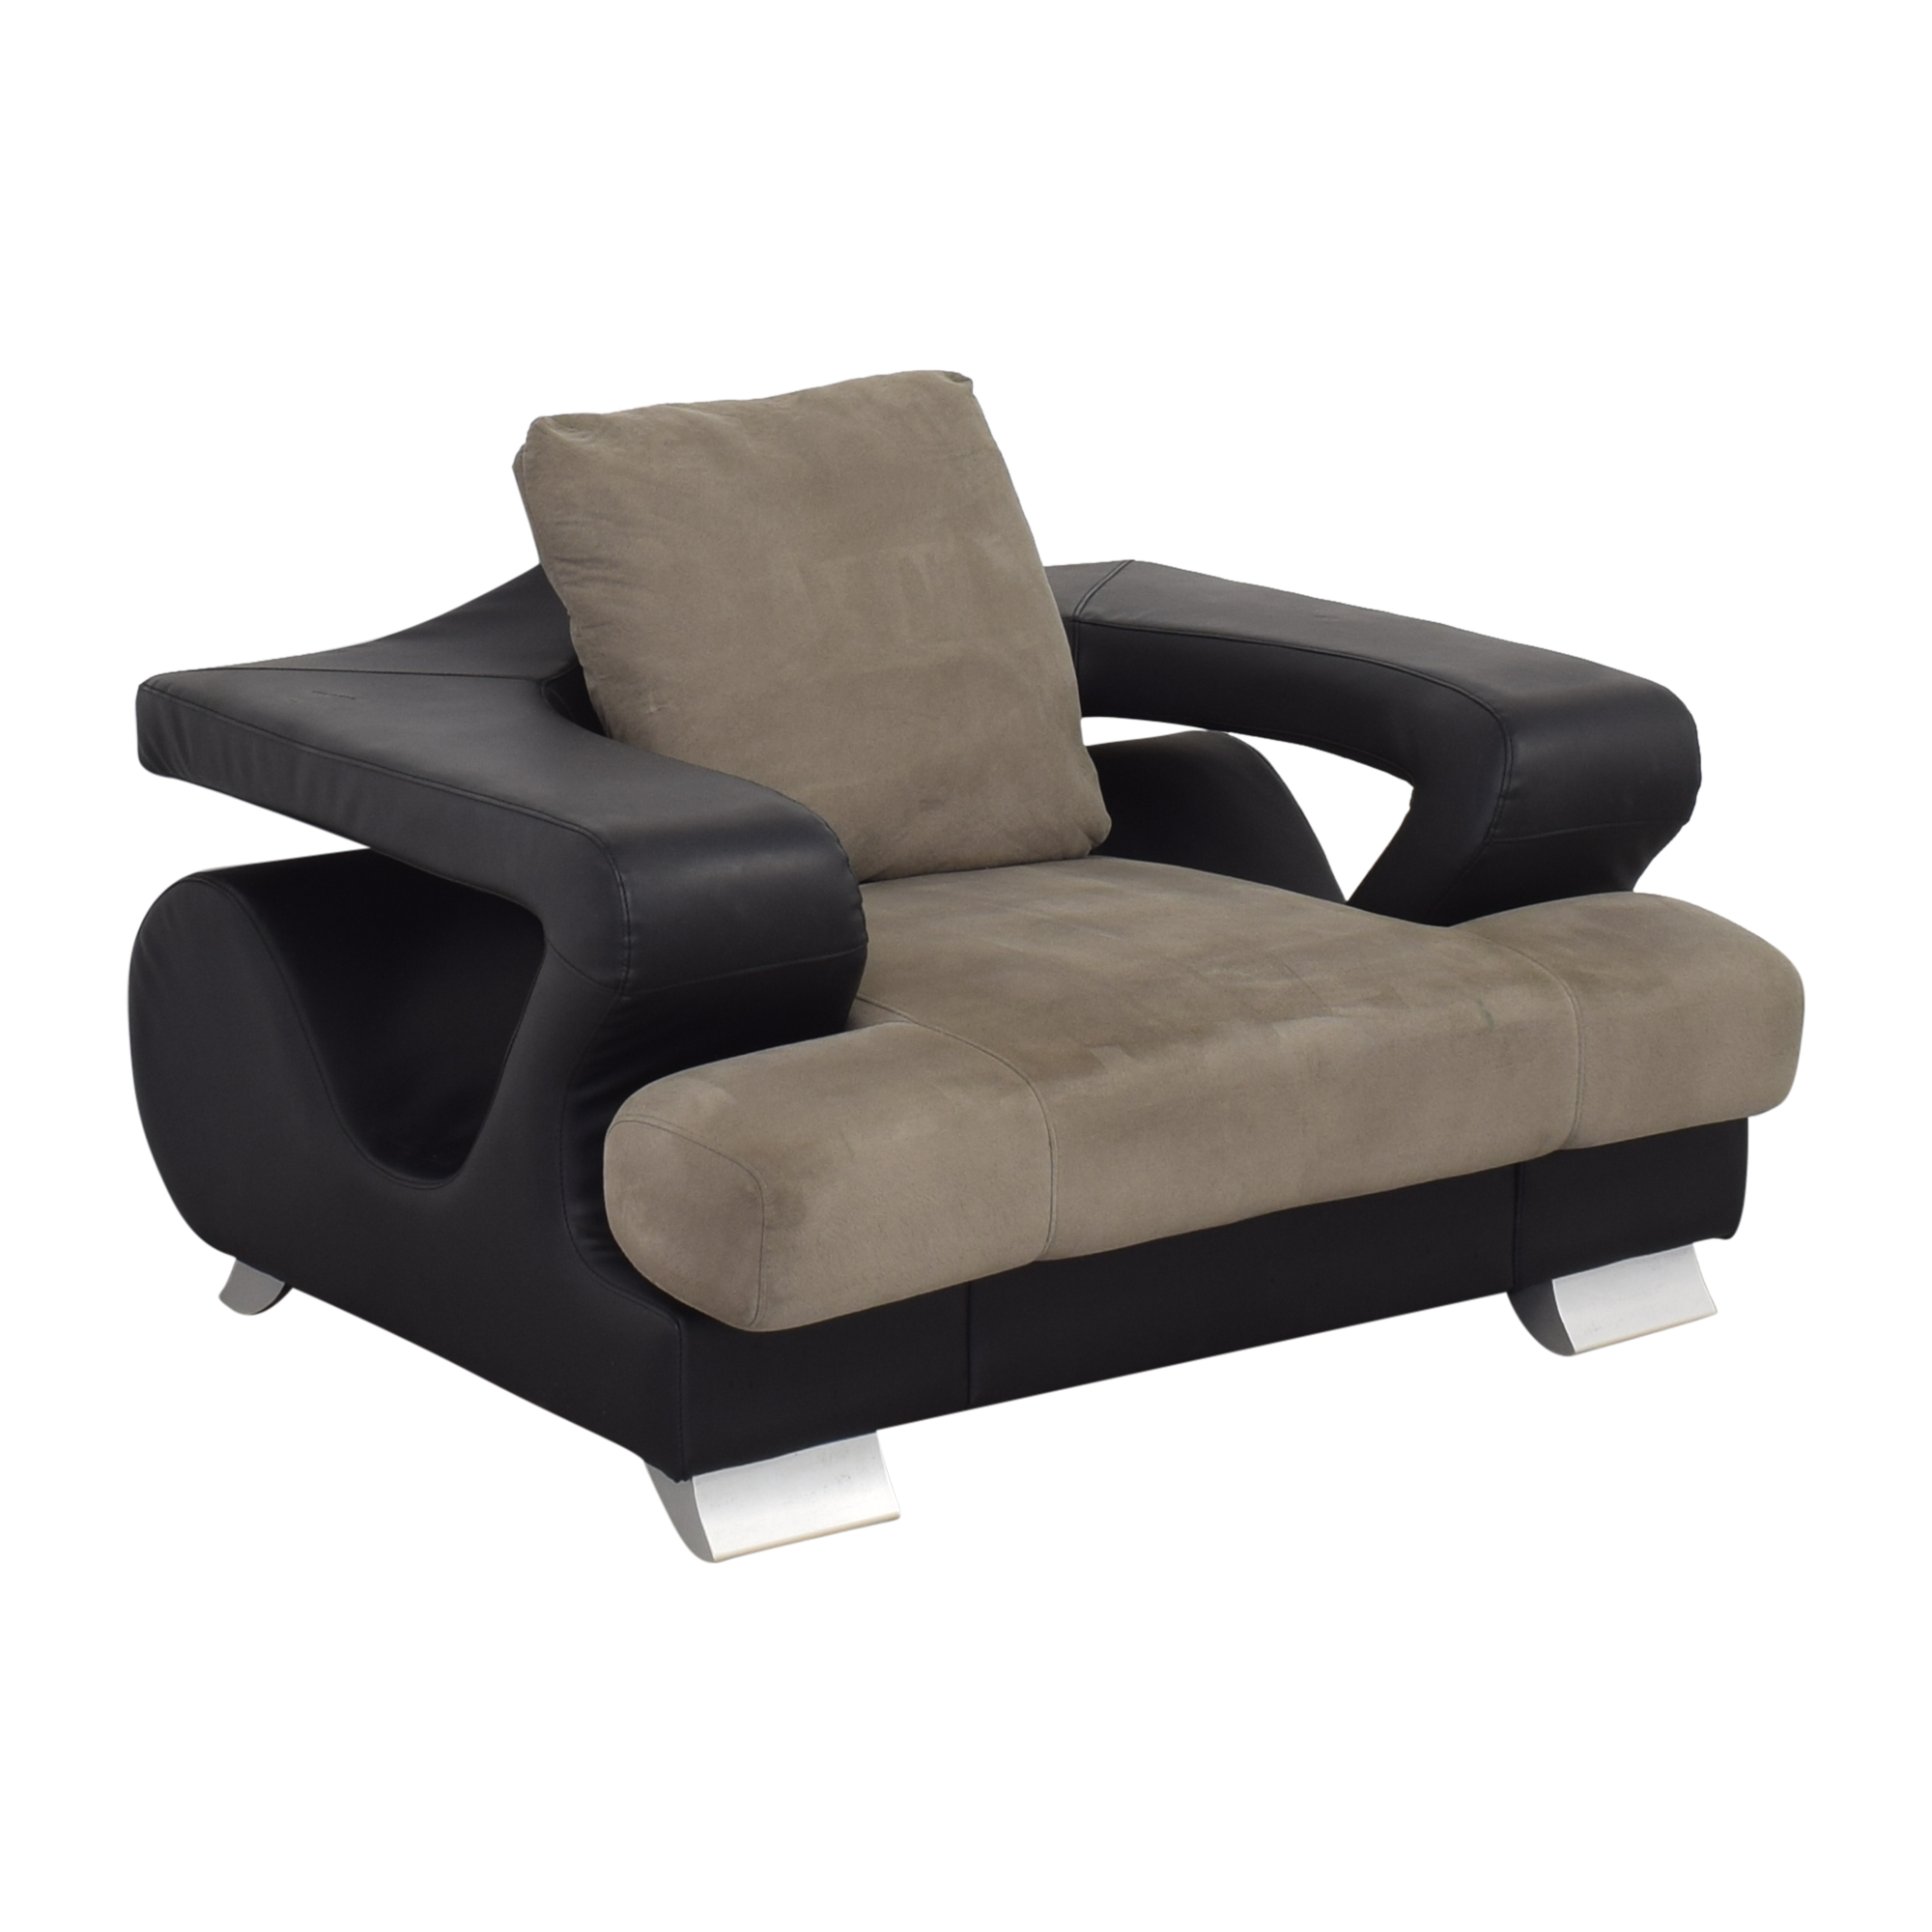 Acme Acme Modern Style Lounge Chair Chairs